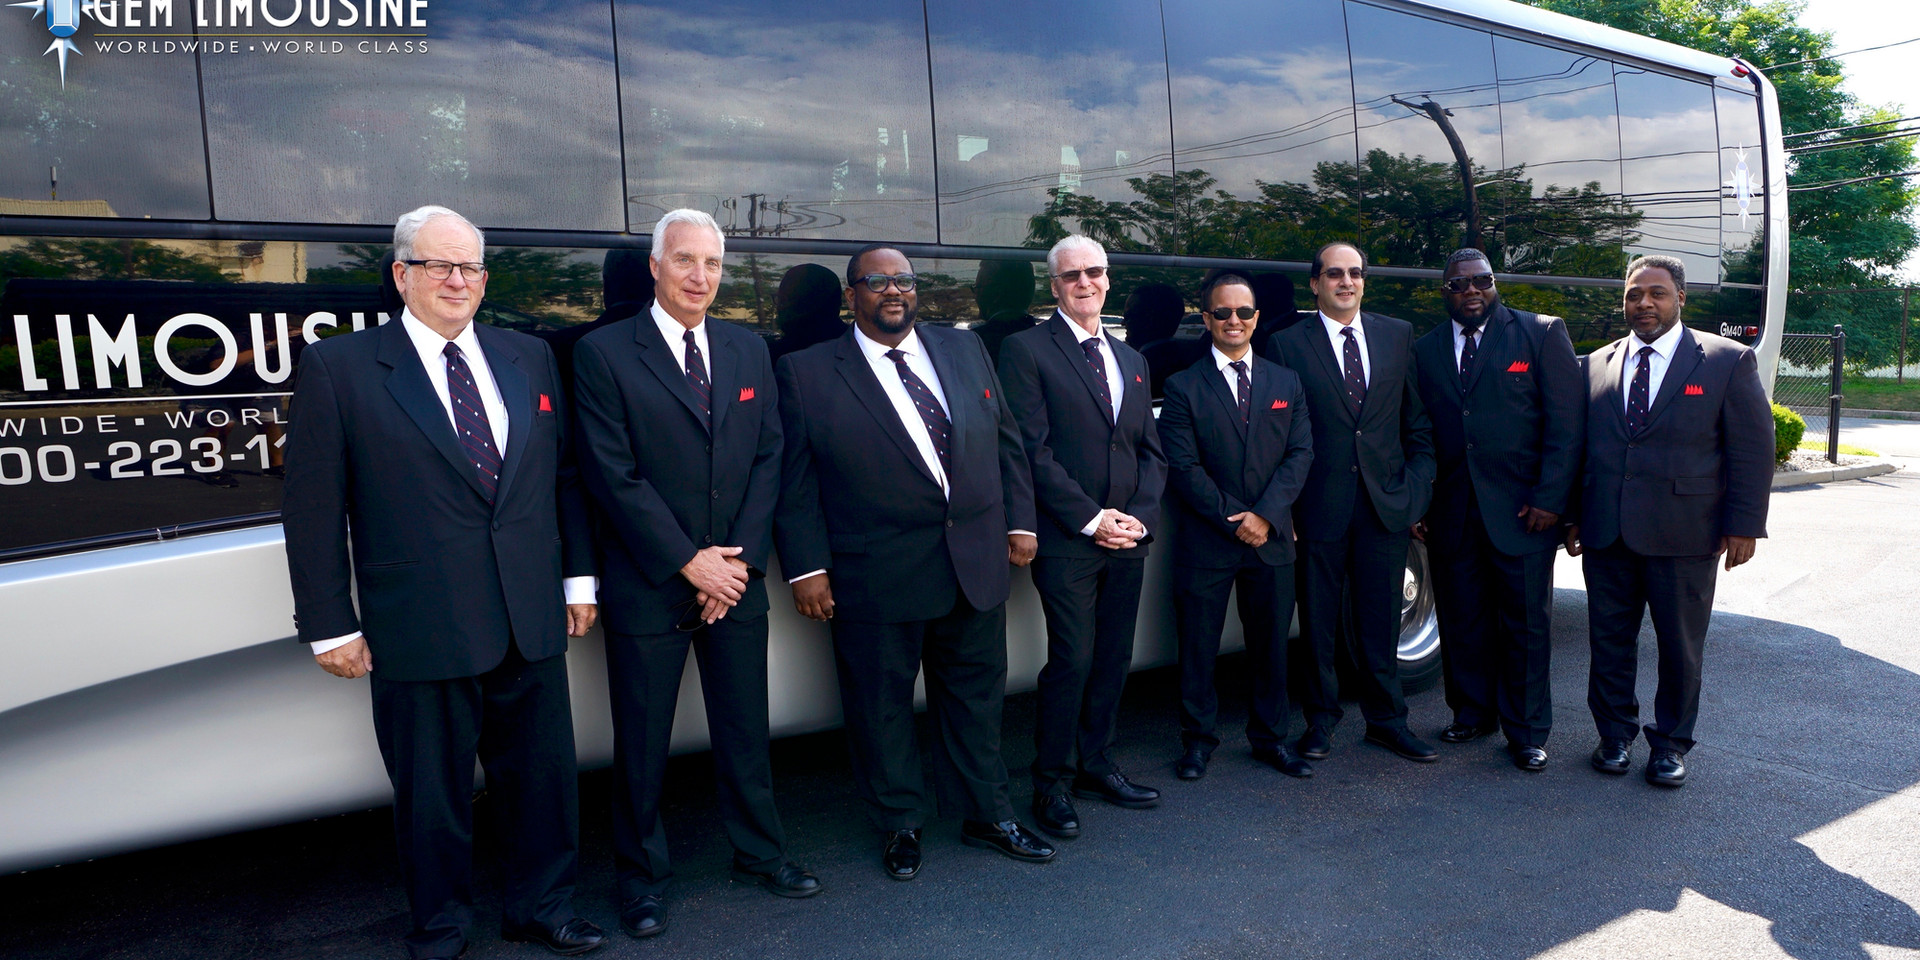 Professional Chauffeured Services - Worl